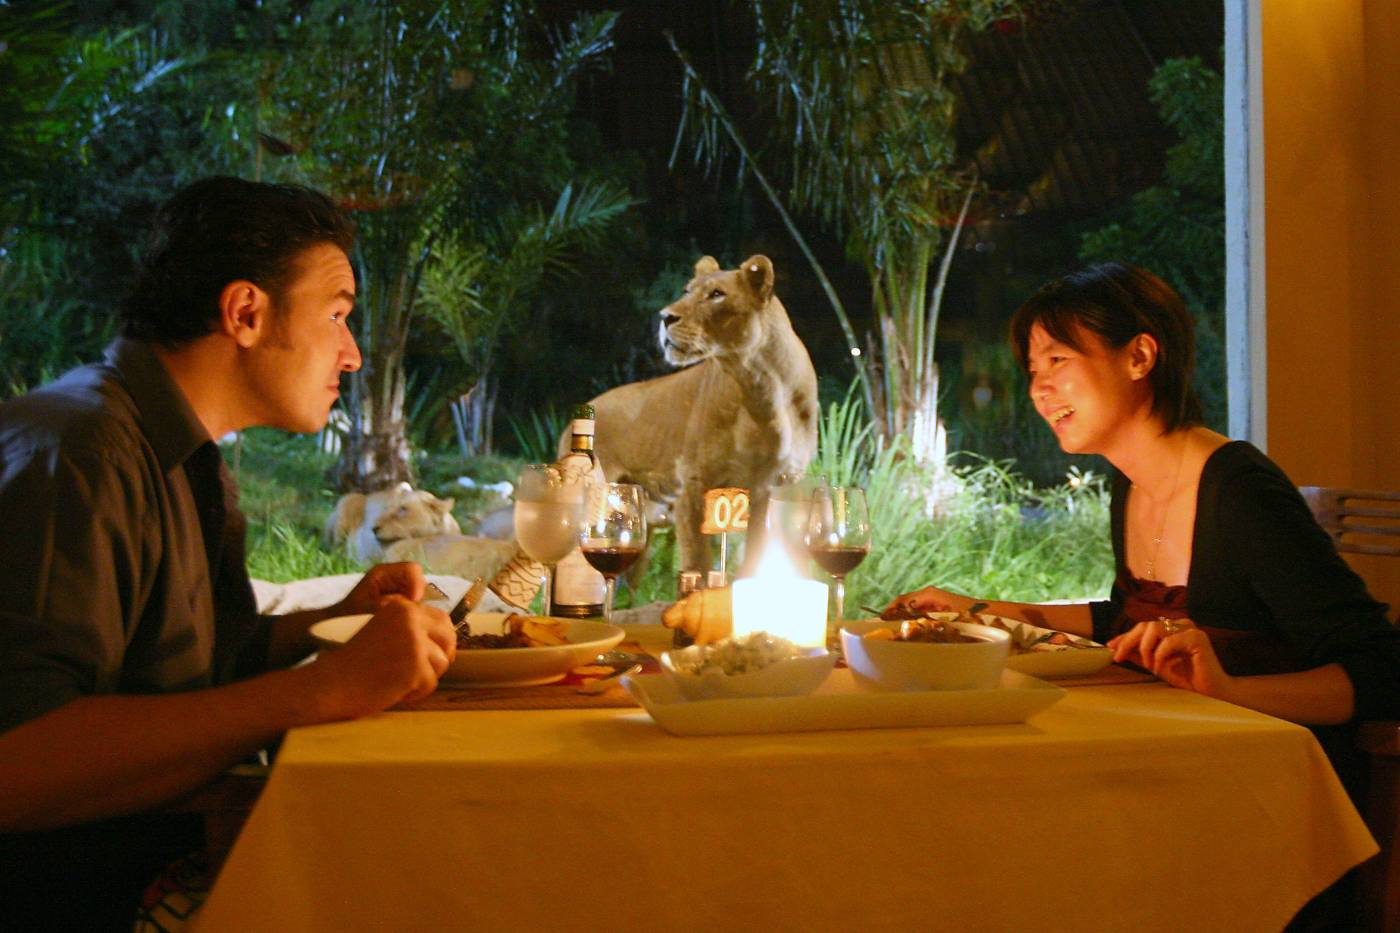 Tsavo Lion Couple Dinner at Bali Safari Mara River Safari Lodge